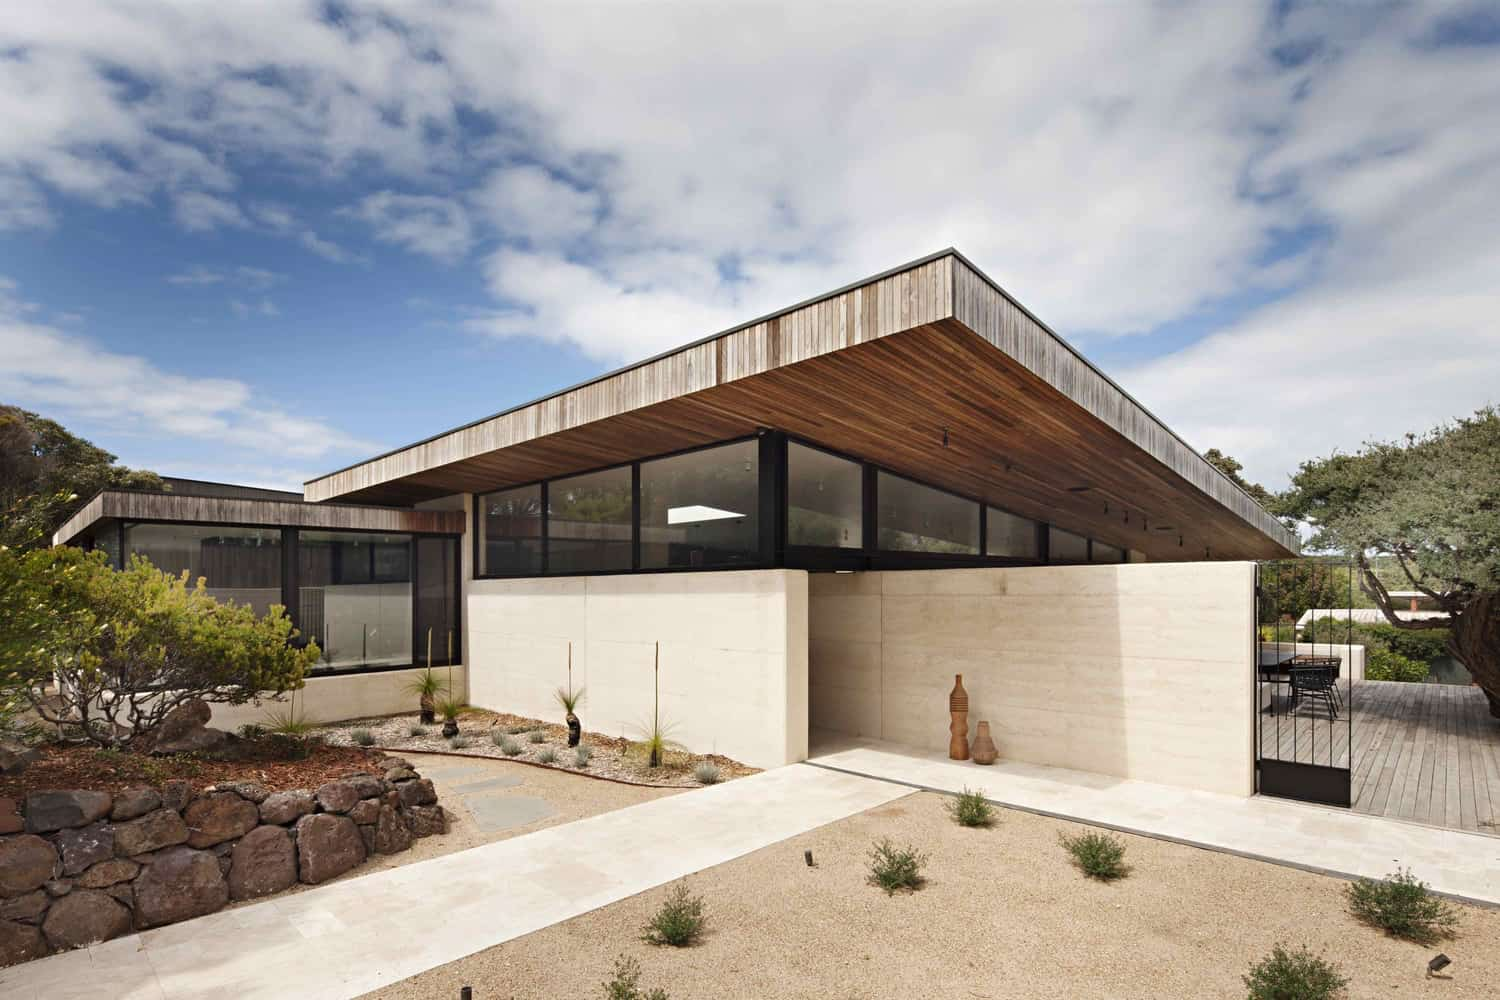 Coastal home in australia showcases rammed earth and timber for Home plan architect